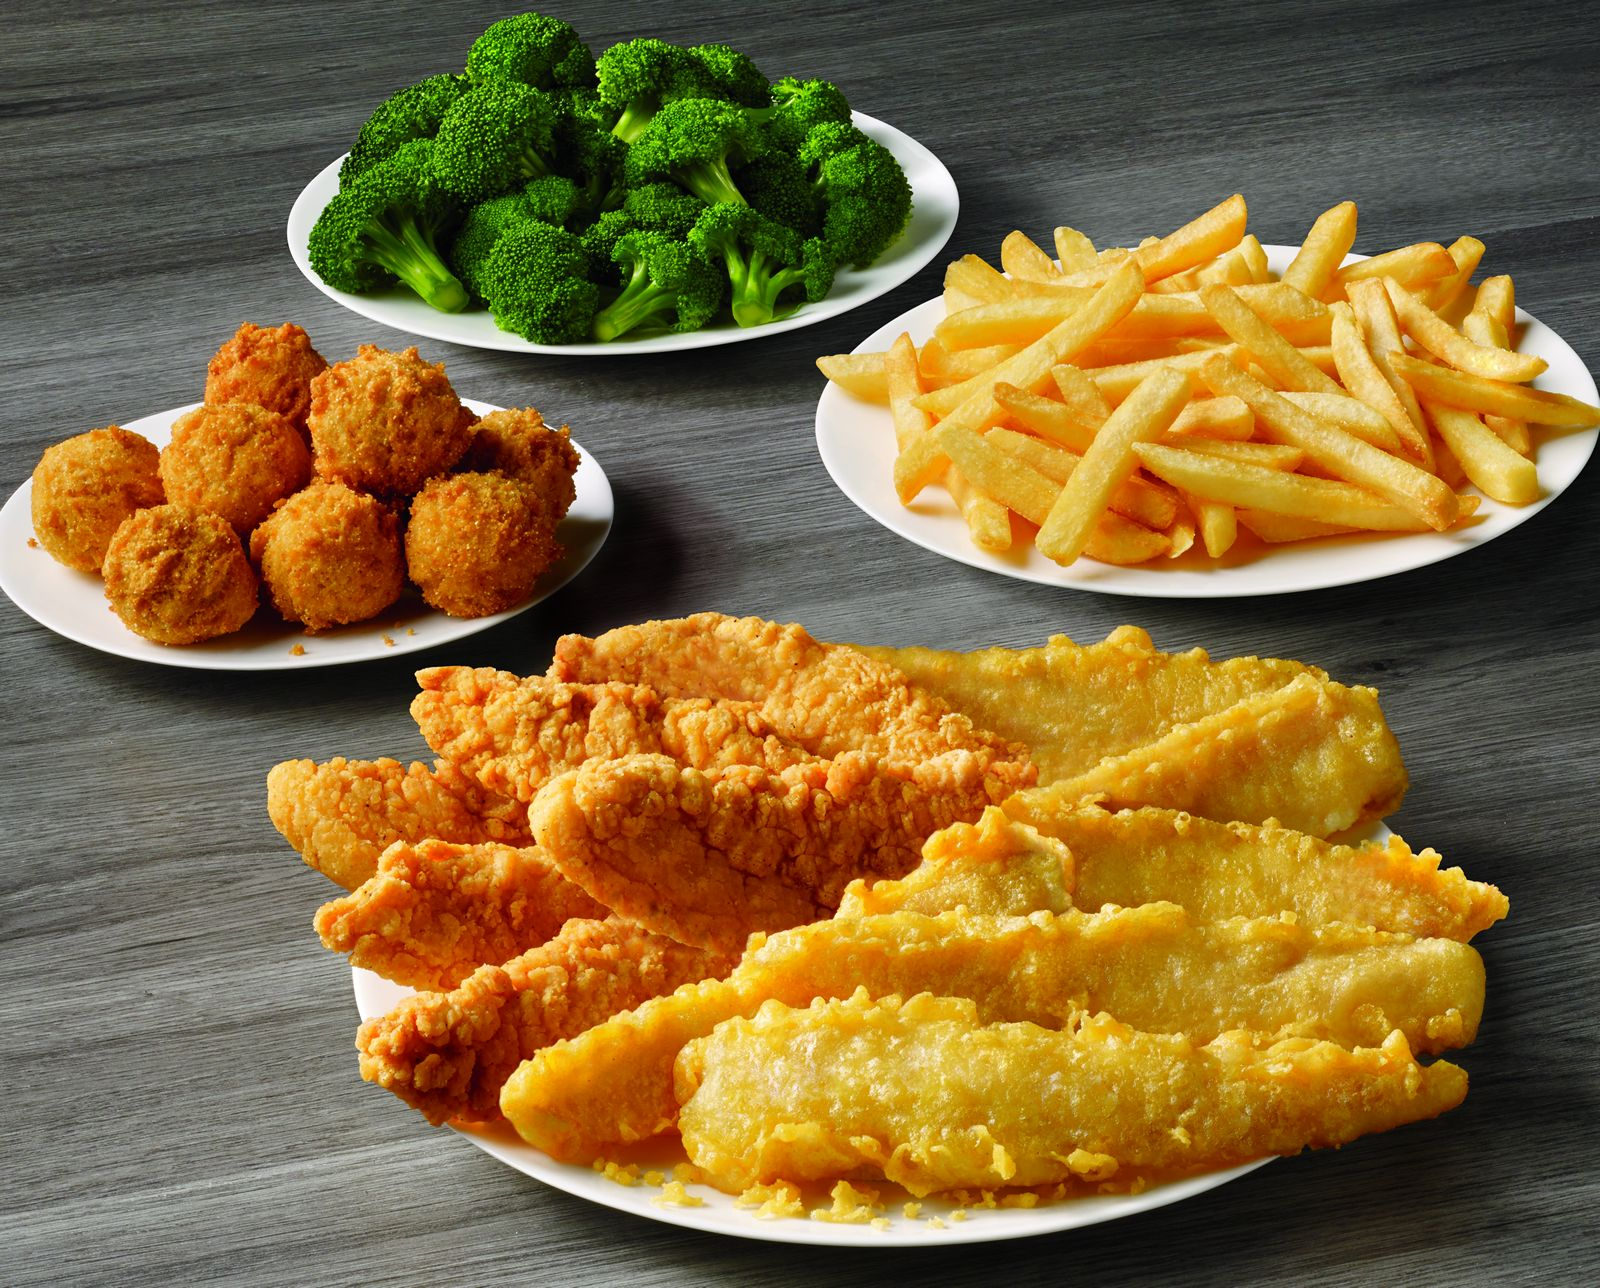 Captain D's Fish & Chicken Family Meal